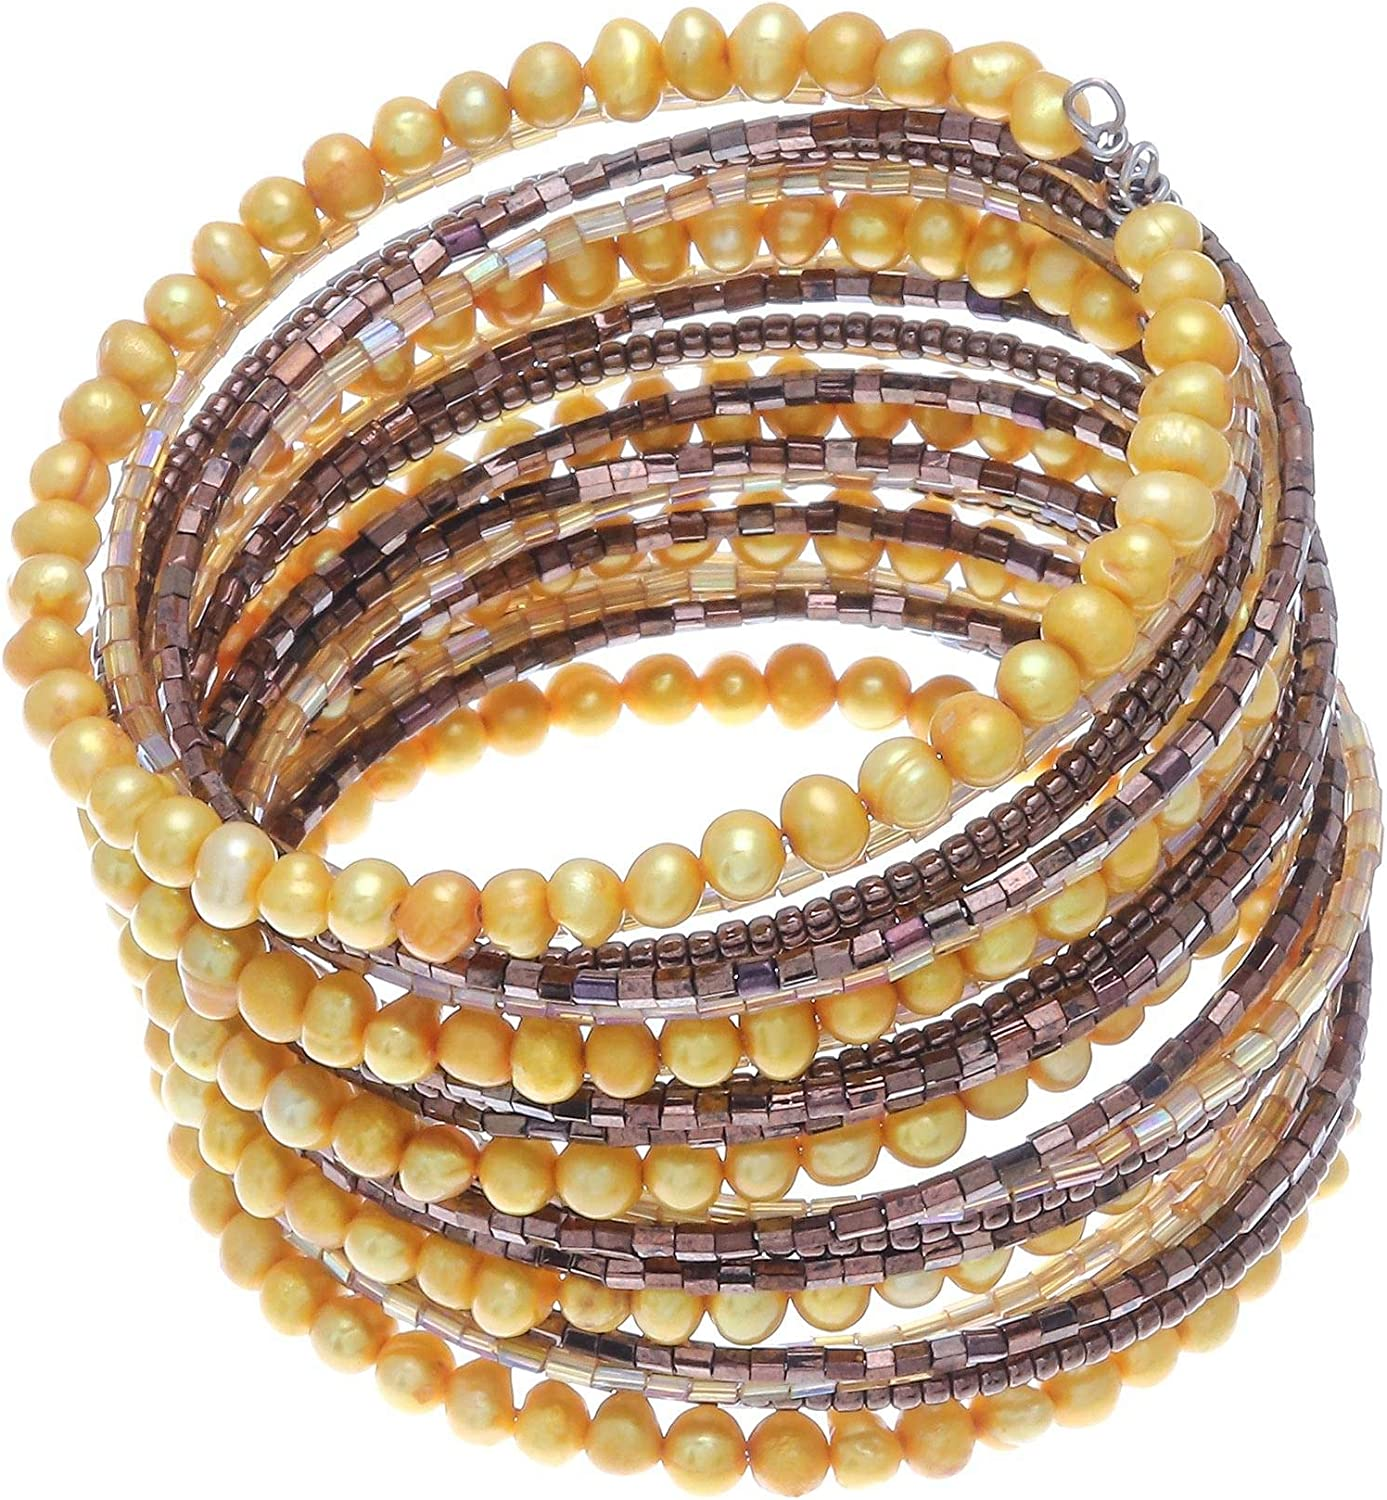 NOVICA Glass Bead Cultured Freshwater Pearl Stainless Steel Cuff Bracelet, Golden Luxuries'